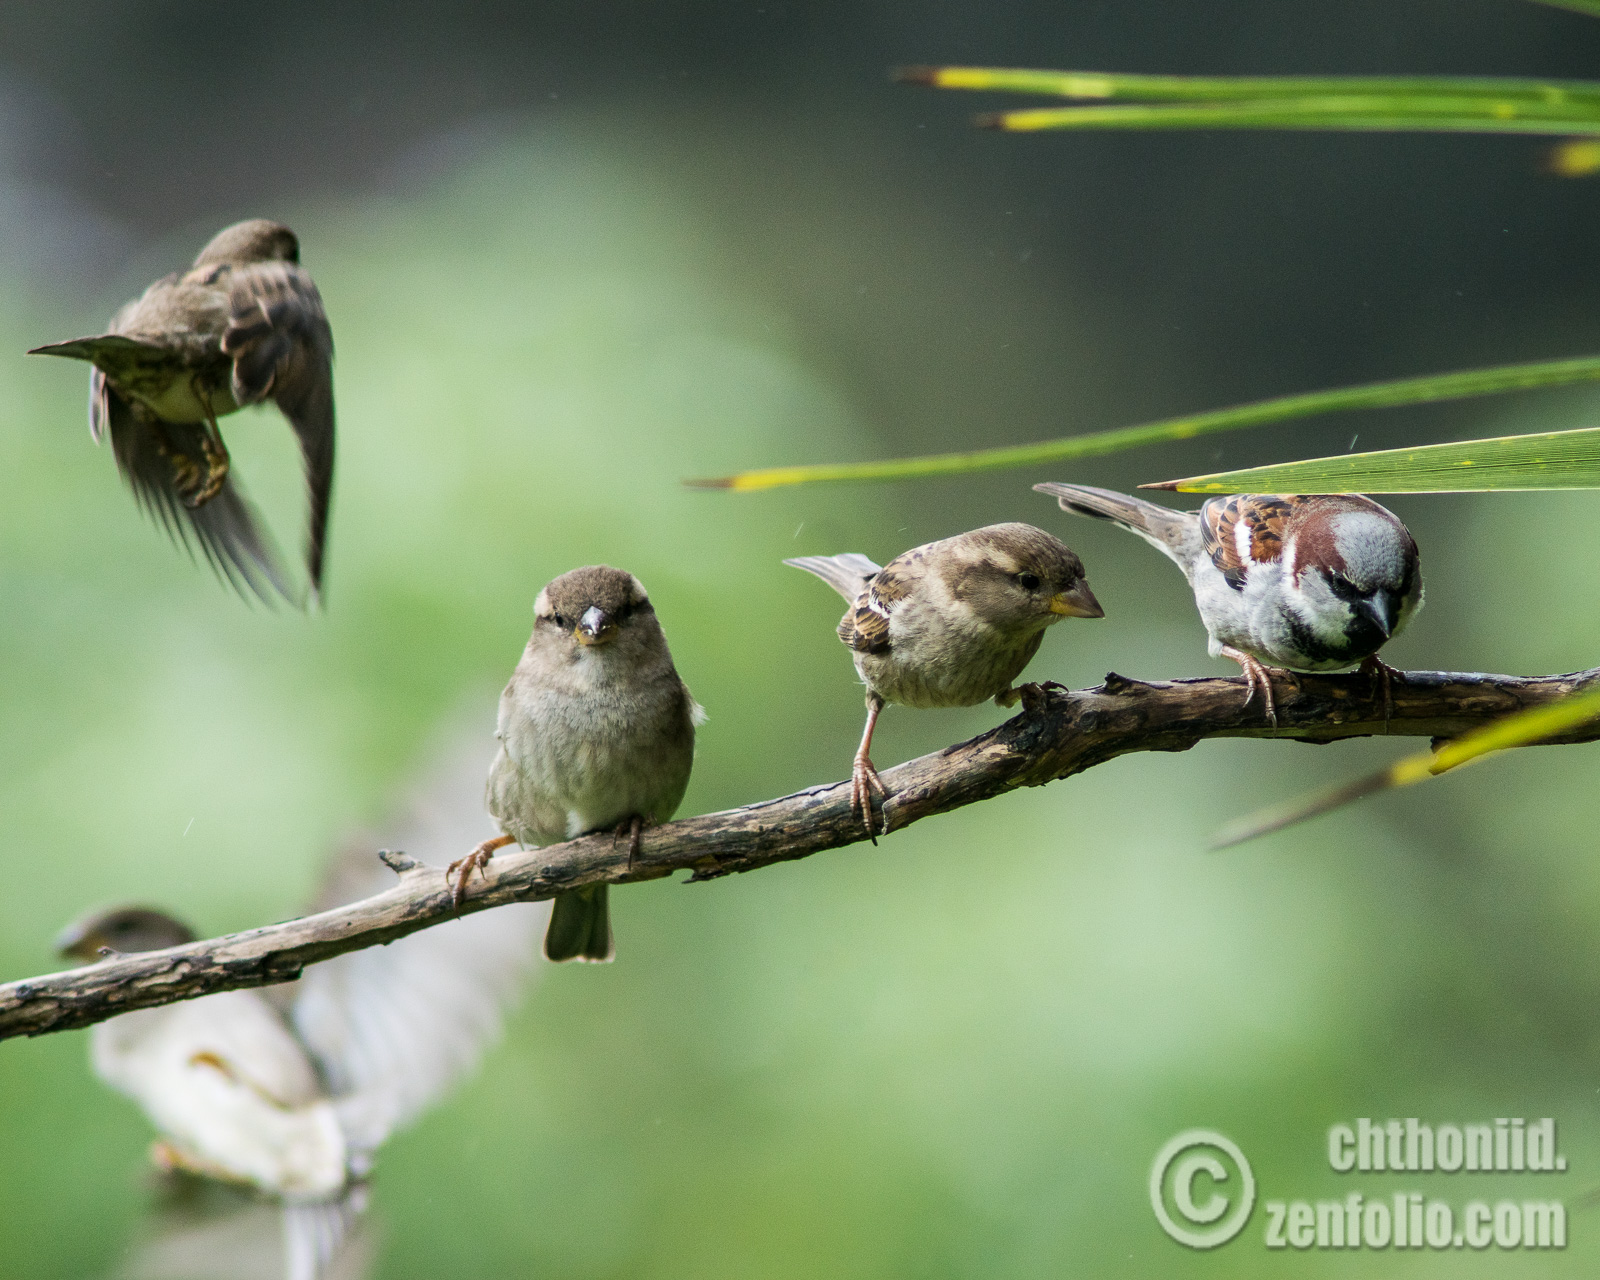 Featured image: Weekend sparrow antics